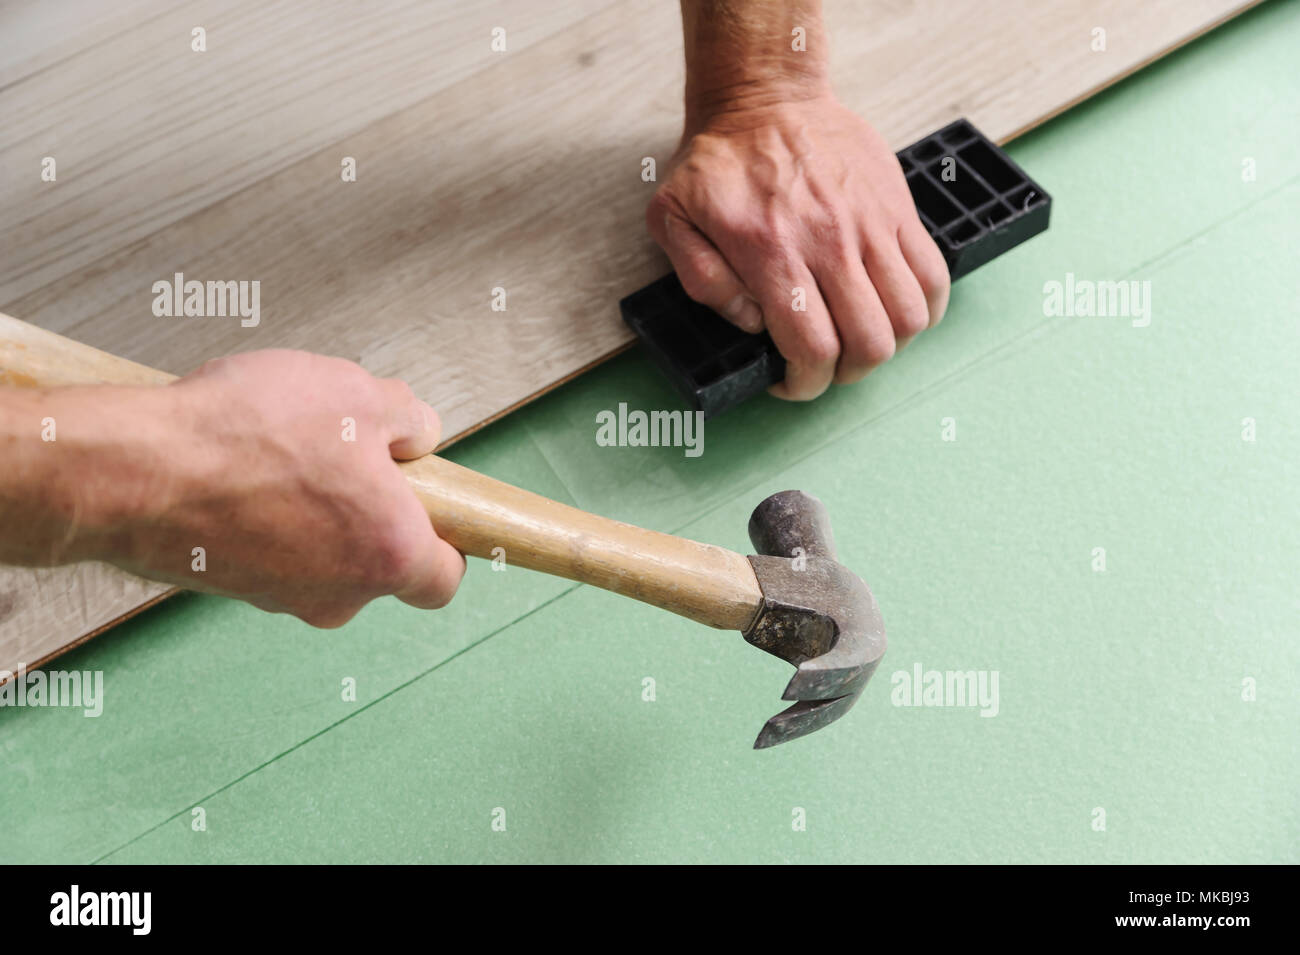 Installing laminate flooring. Worker lining boards to each other - Stock Image